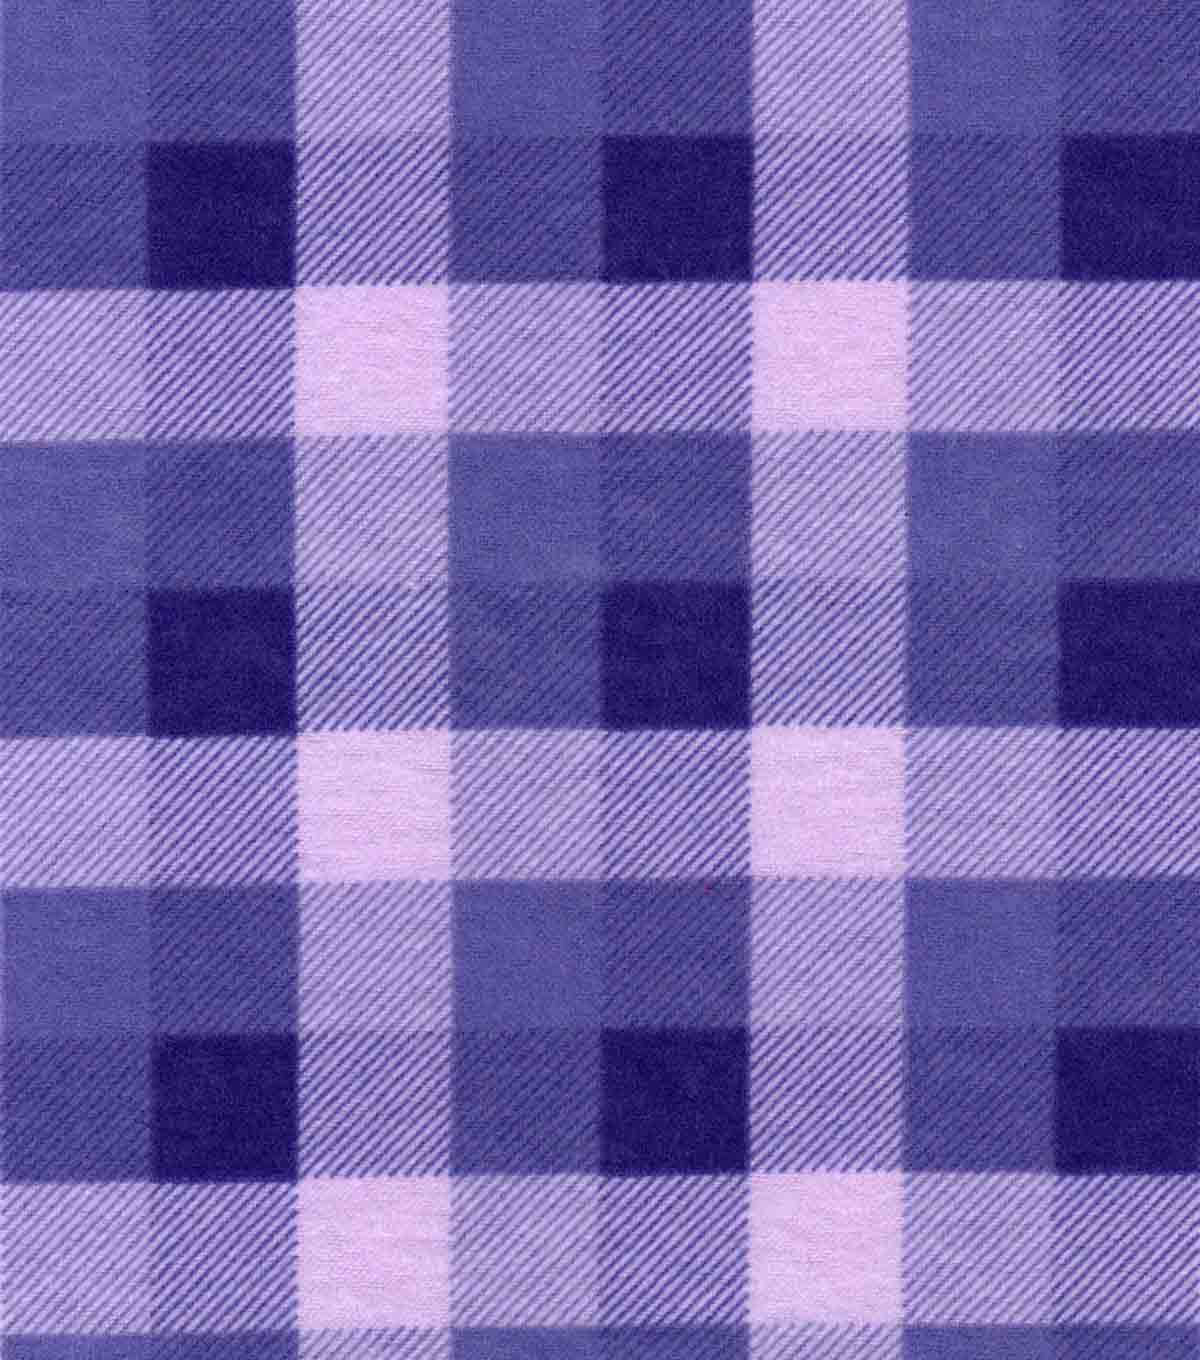 Snuggle Flannel Fabric -Purple Buffalo Checks